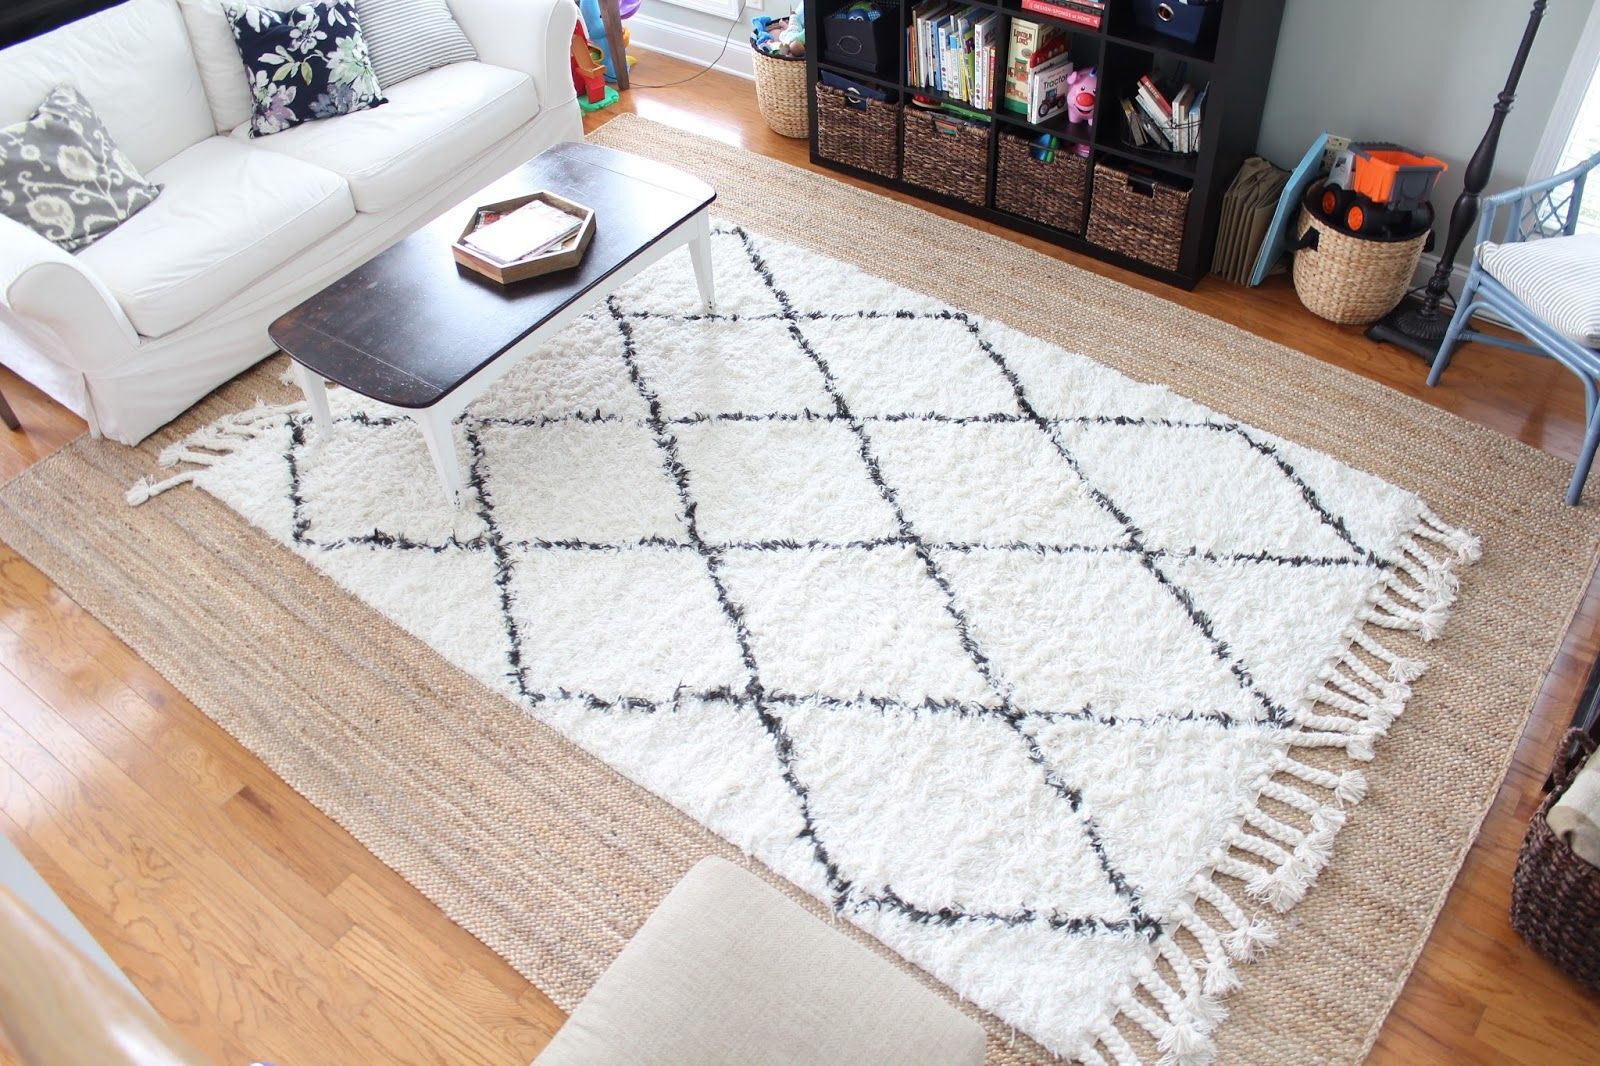 Our New Double Layer Rugs In The Living Room Jute Rug Living Room Layered Rugs Layered Rugs Living Room